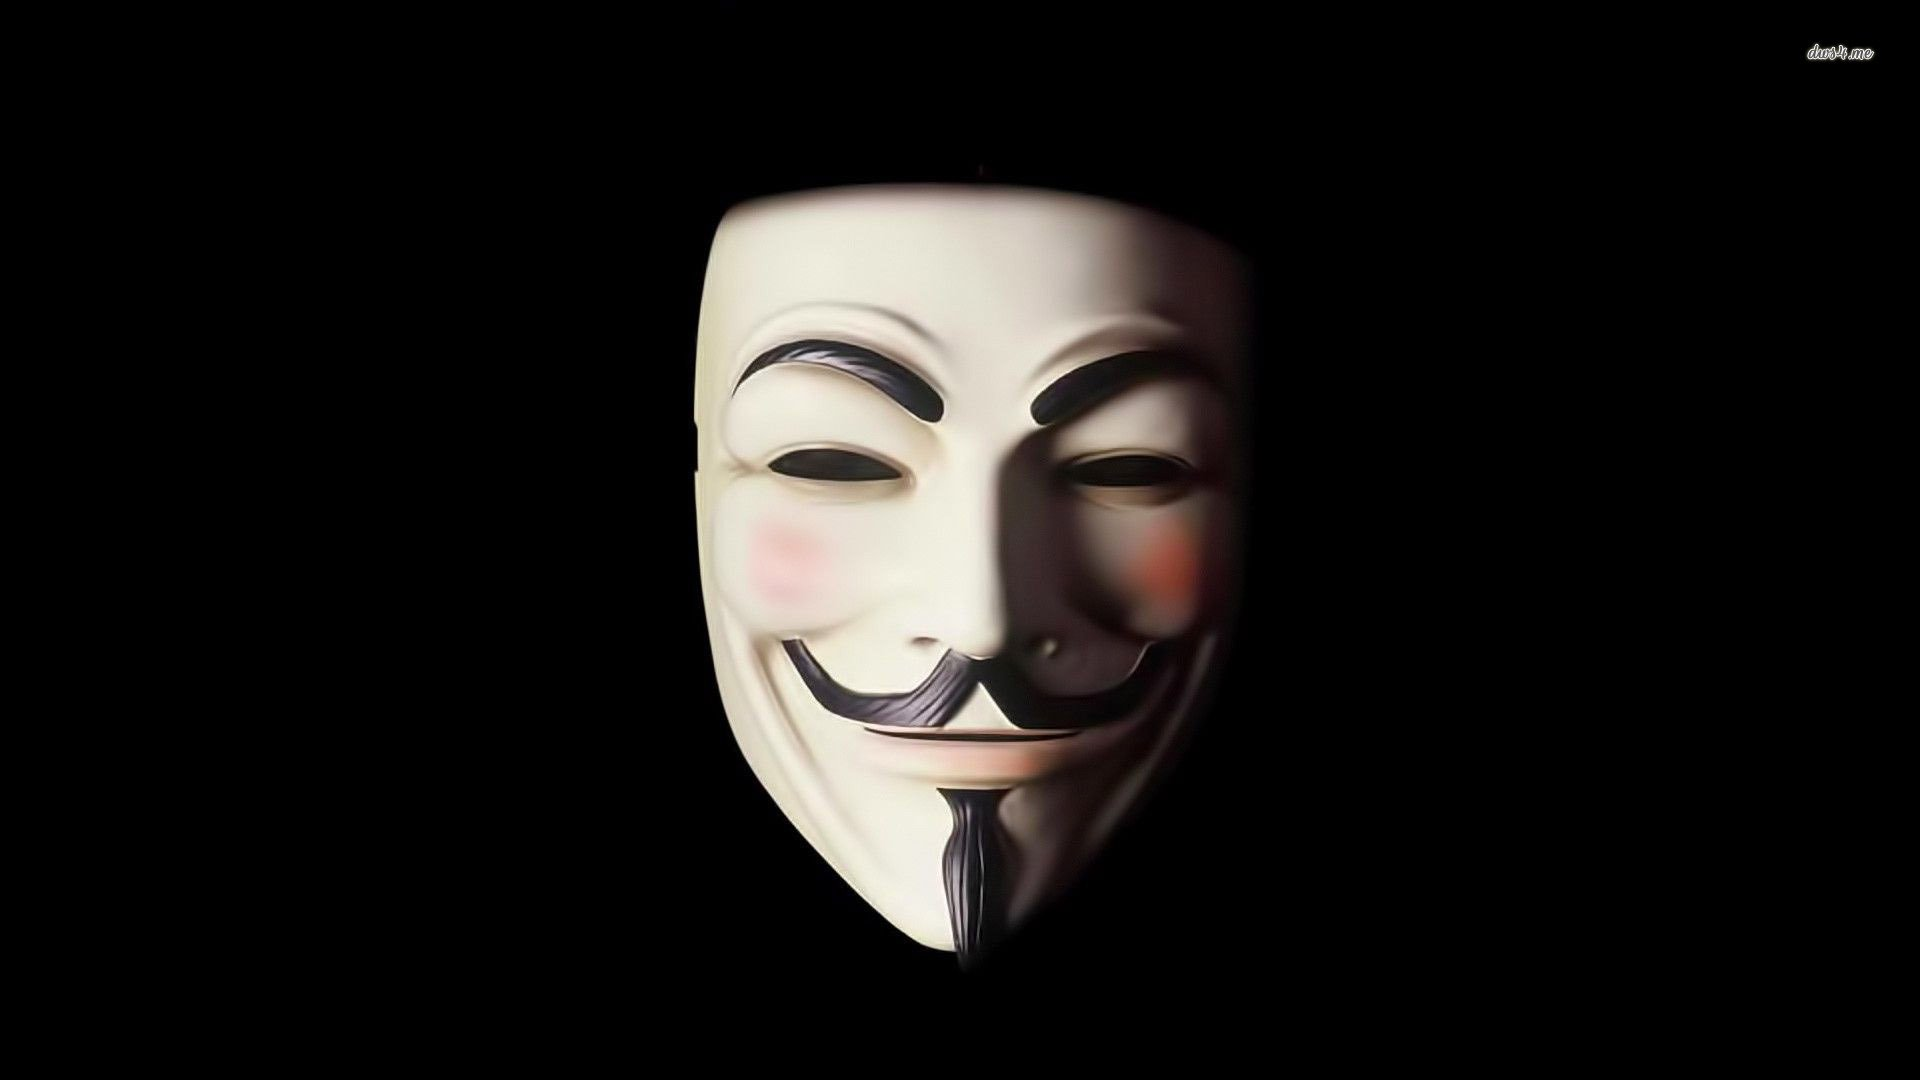 Anonymous Mask Wallpaper - WallpaperSafari